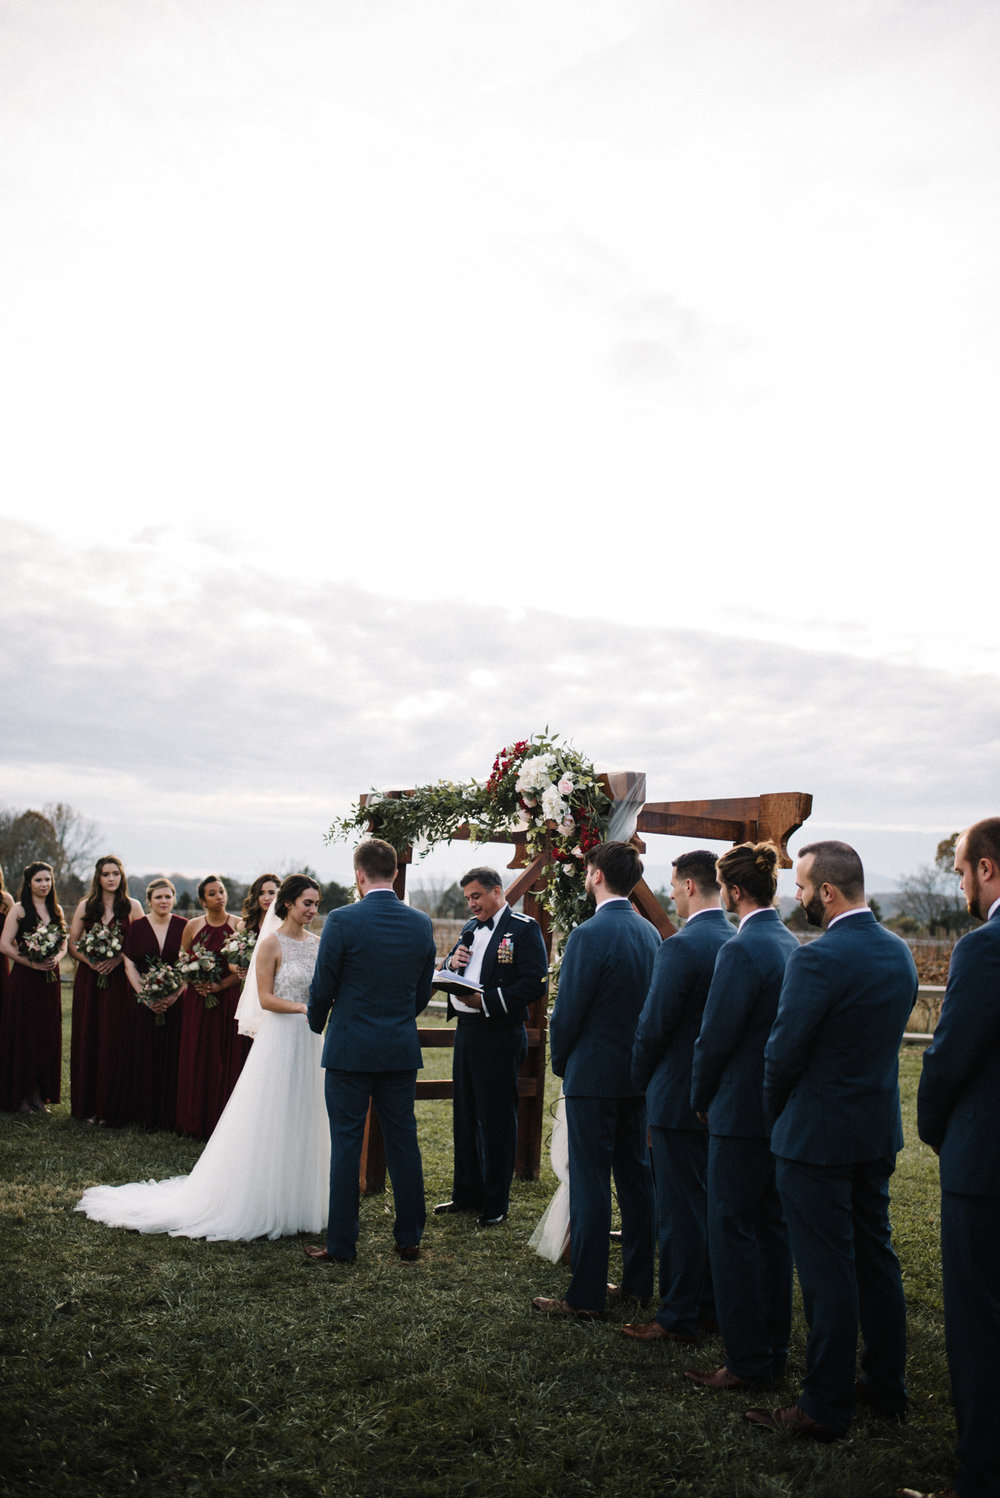 Alyssa and Jesse Winter Vineyard Wedding Luray Virginia Shenandoah Valley Faithbrooke_52.JPG